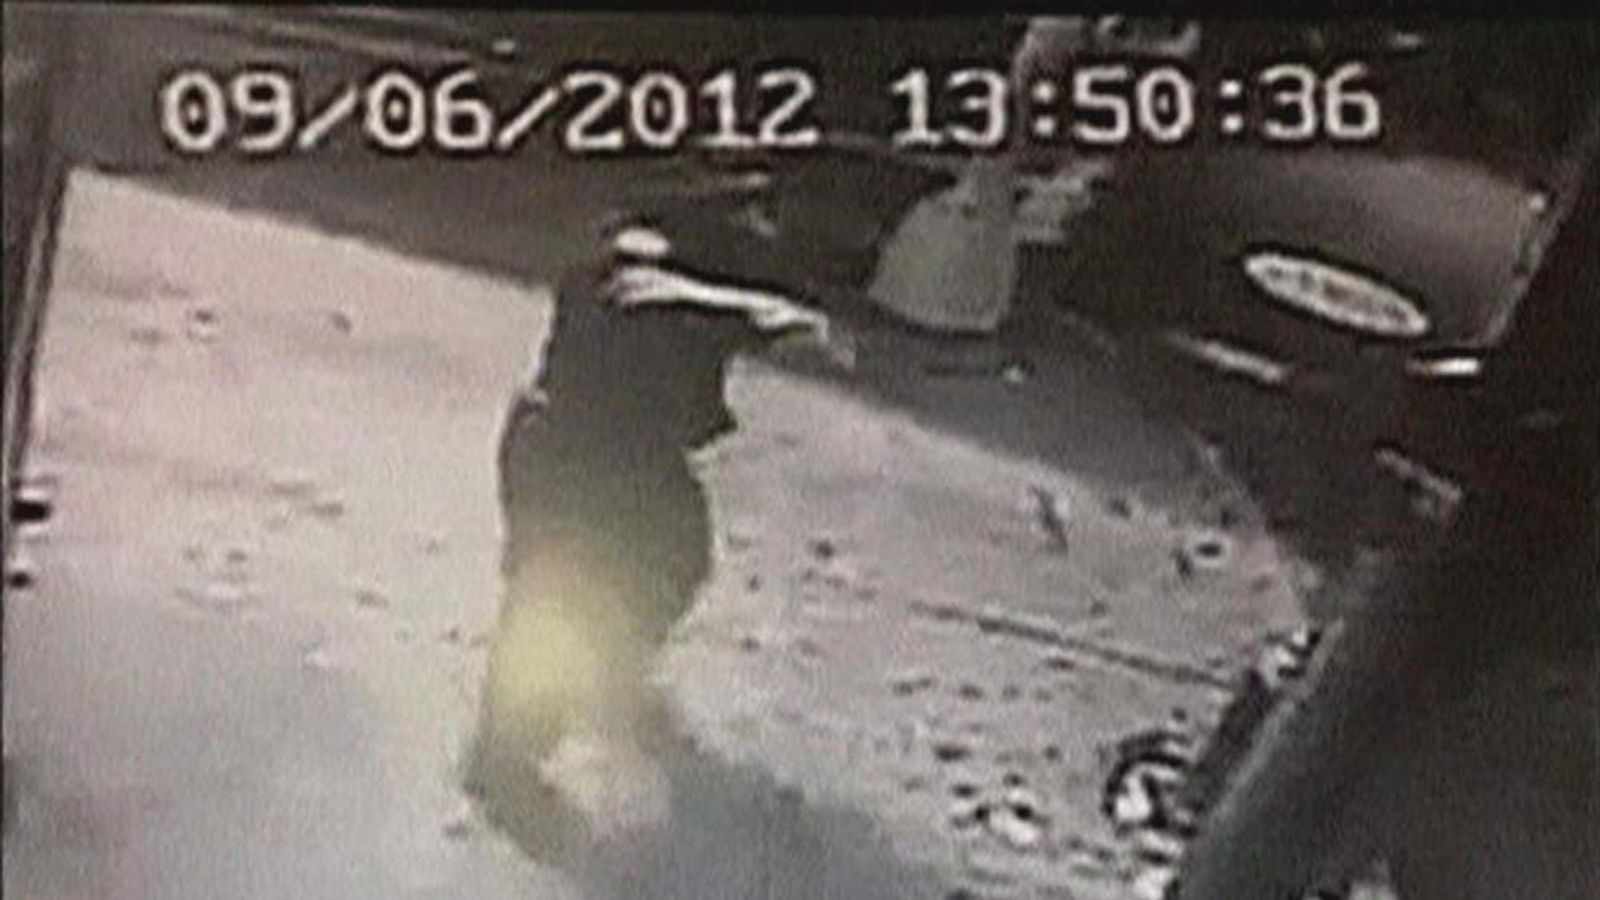 Surveillance video showing NYPD police officer shooting unarmed shop worker